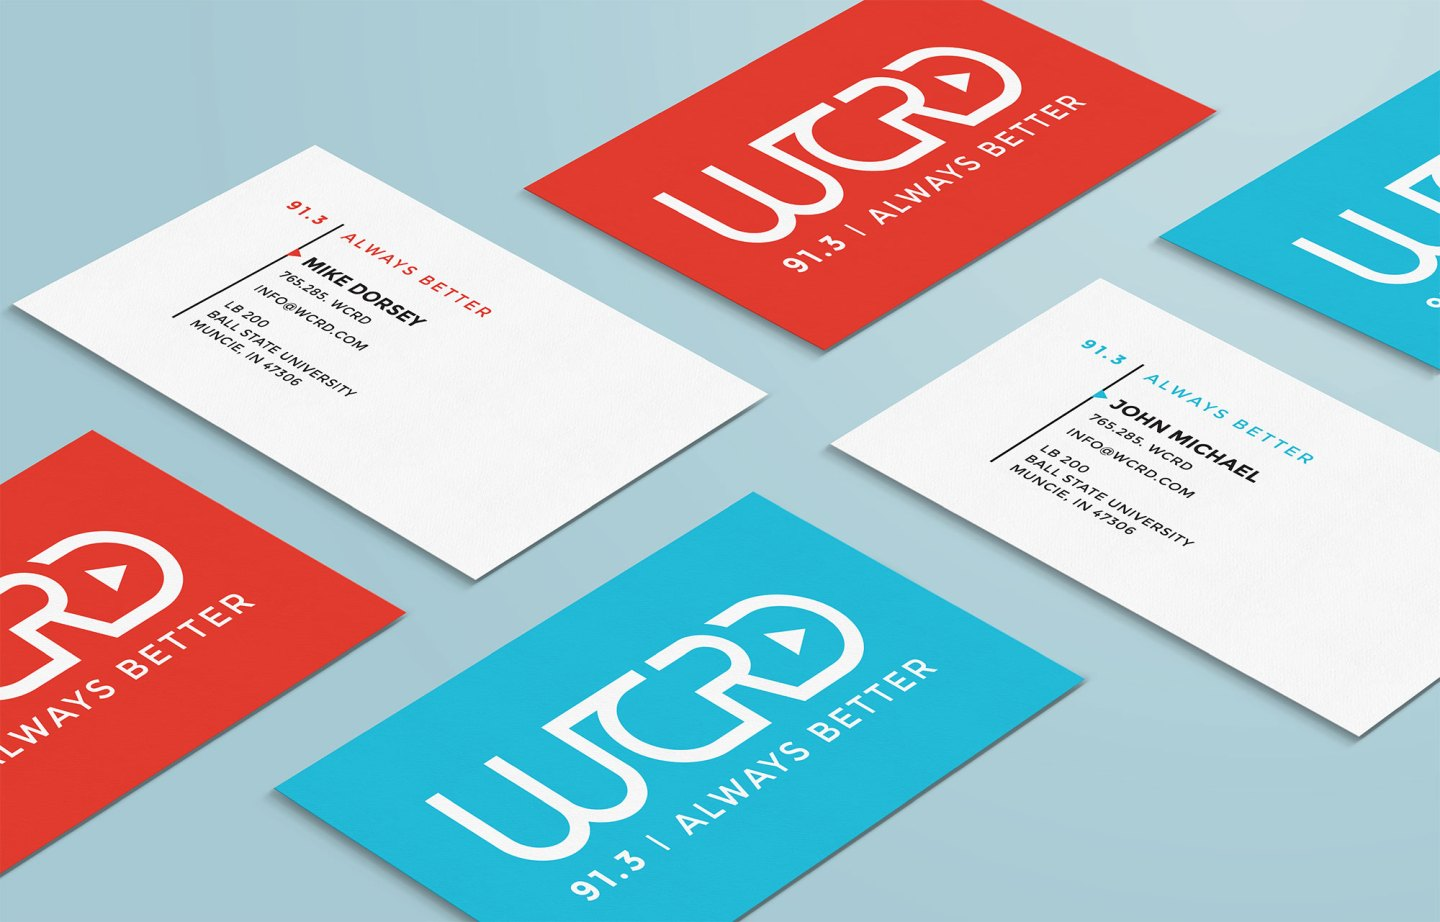 The WCRD primary logo lockup and business card design